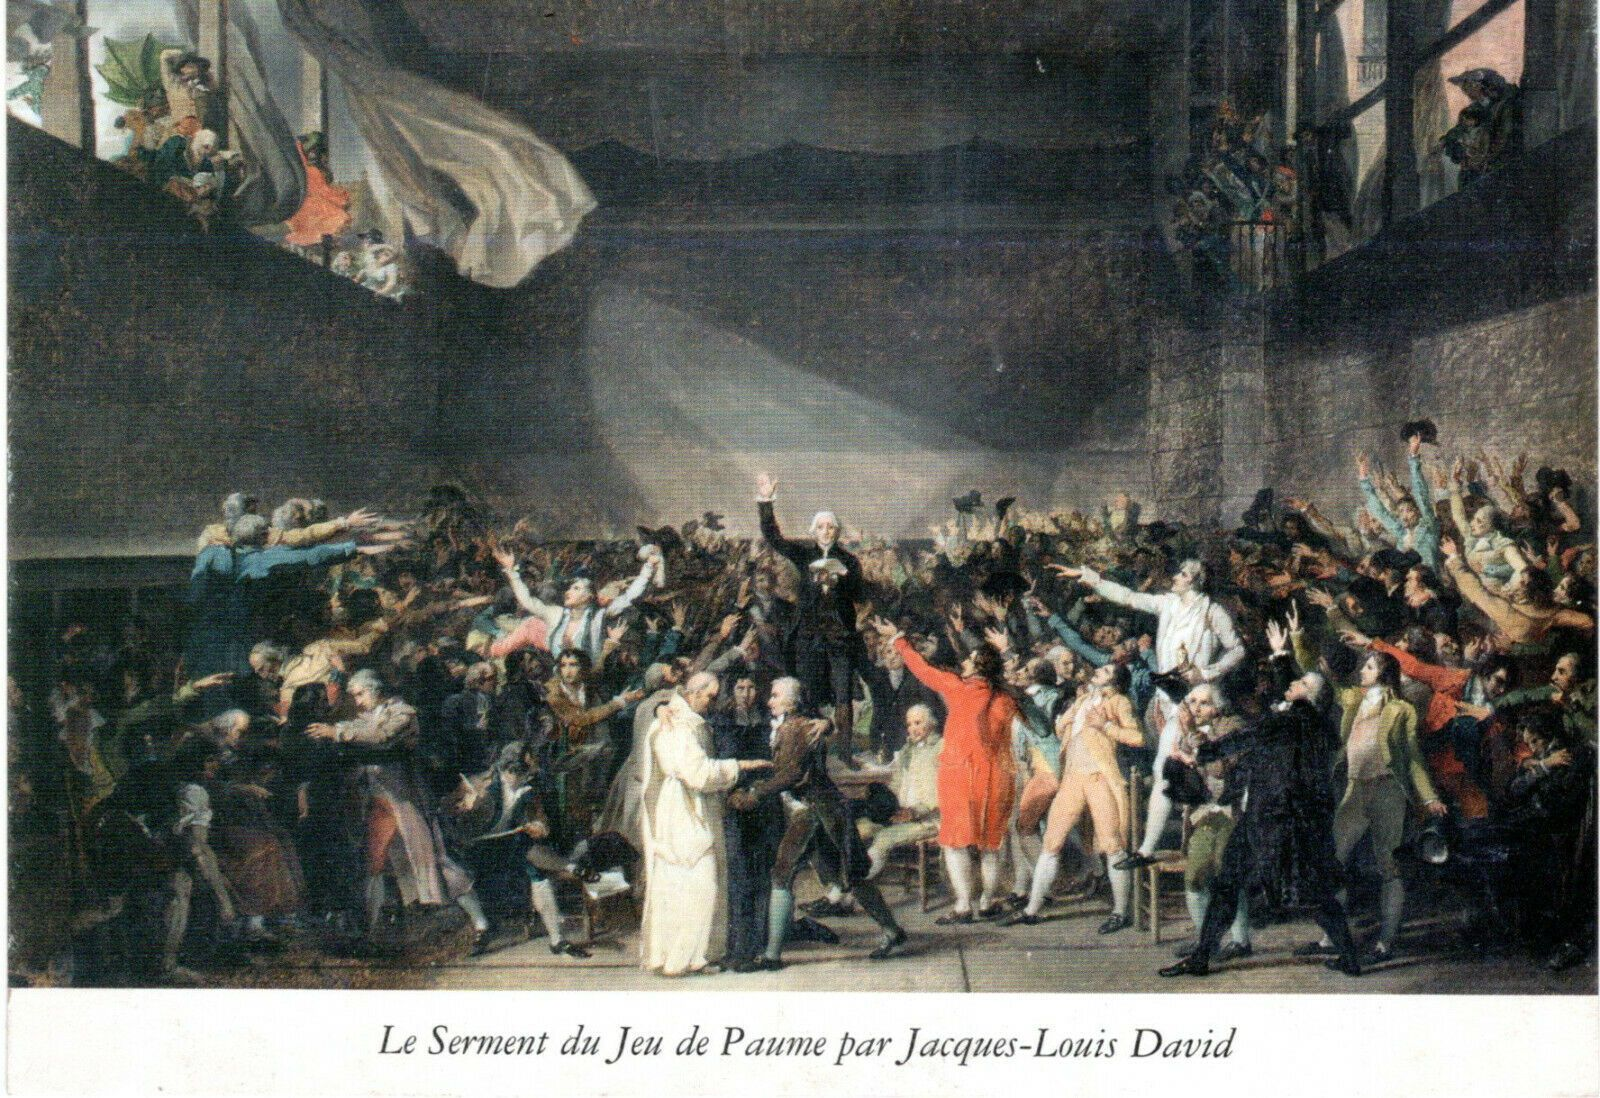 Reproduction du Tableau LE SERMENT DU JEU DE PAUME de Jean Louis DAVID | Jeu  de paume, Le serment, Jean louis david